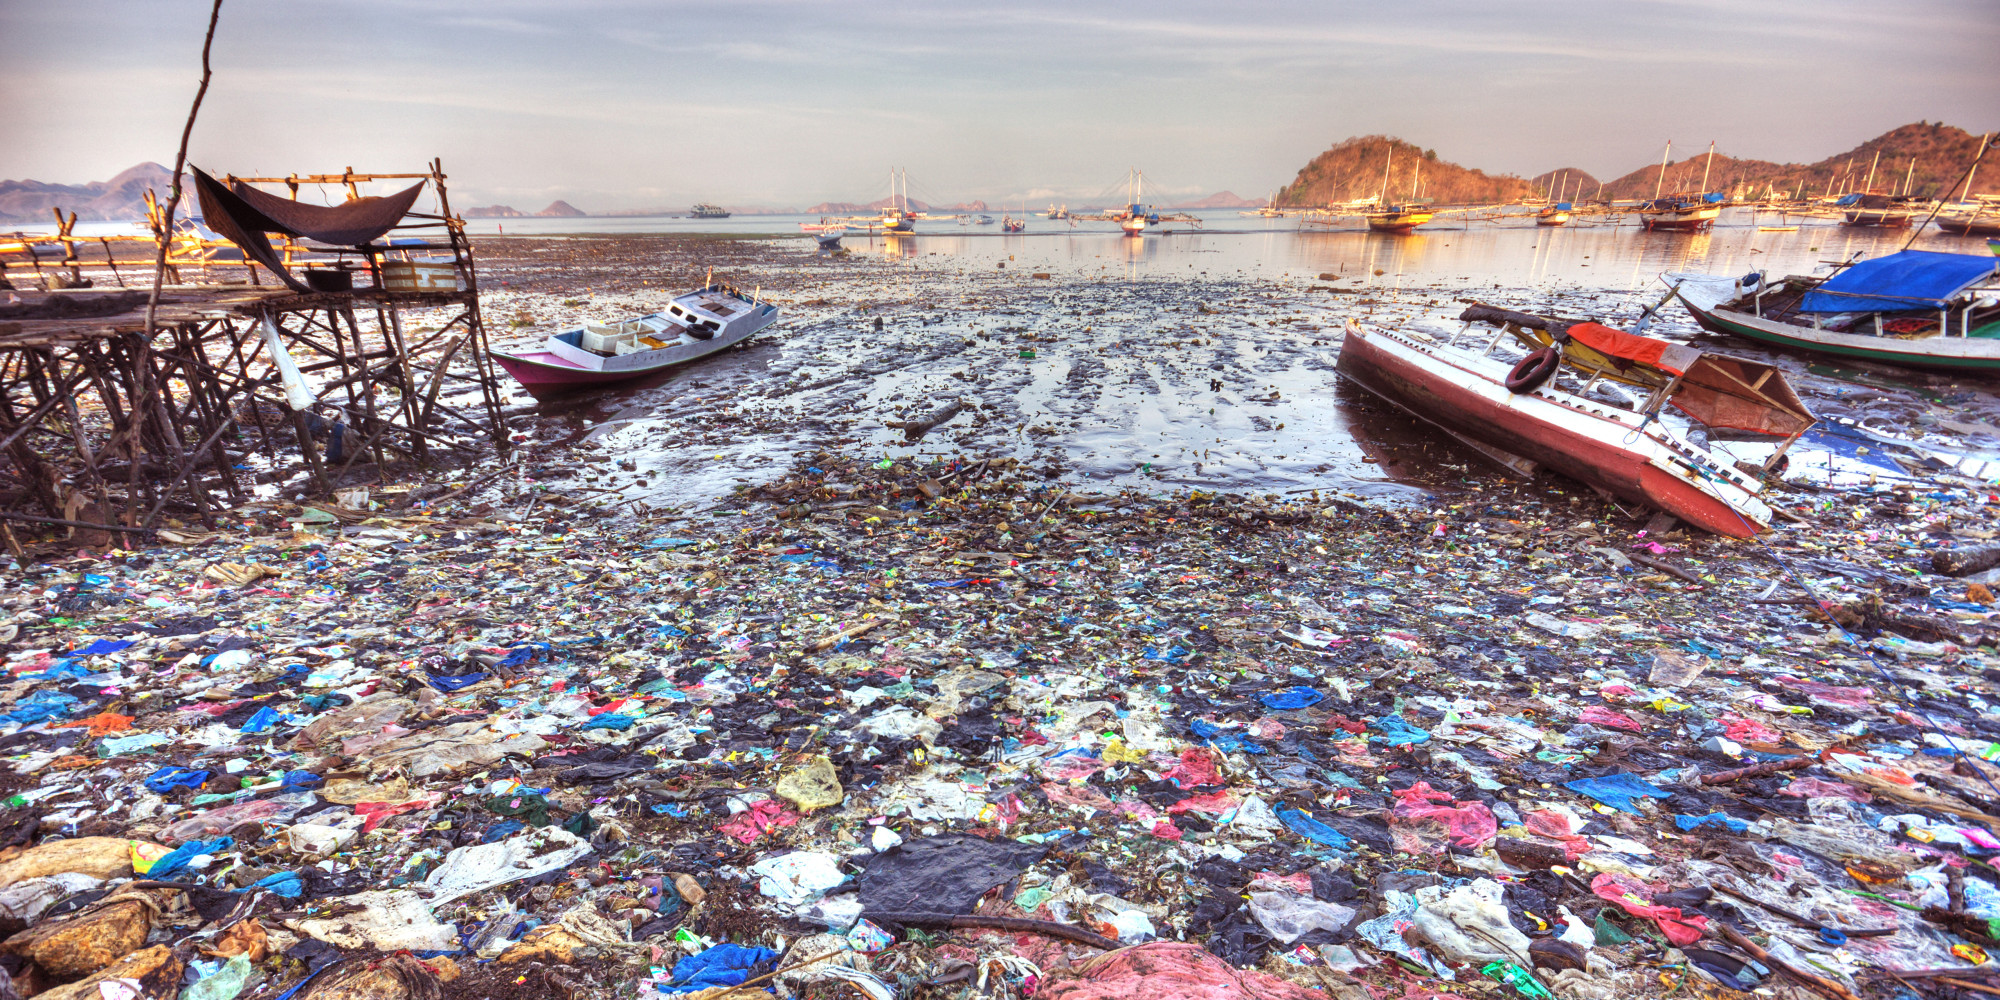 Researchers discover plastic that weighs 269,000 tons floating on ocean surfaces